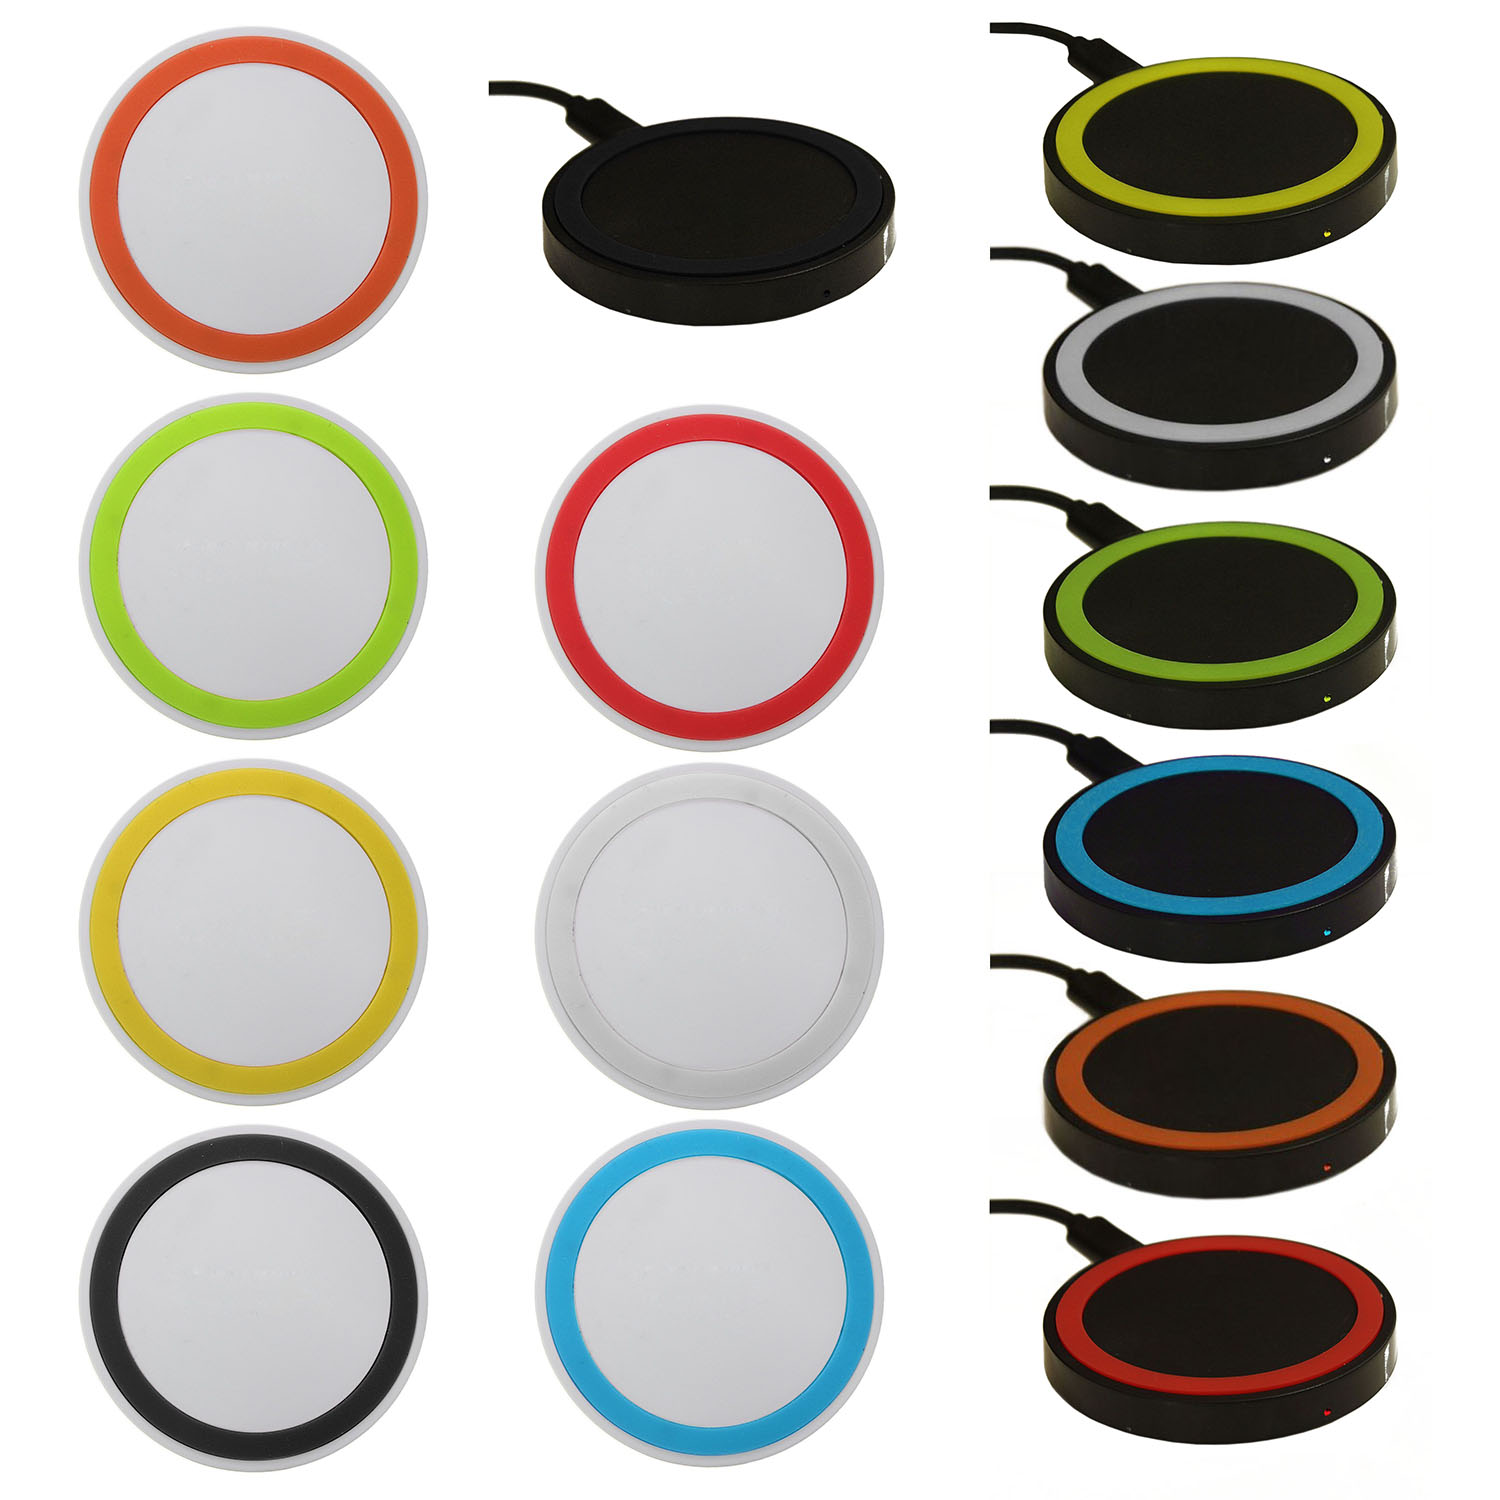 QI-Wireless-Charging-Charger-Pad-for-Nokia-Lumia-Sansung-Galaxy-Sony-Nexus-A7P9